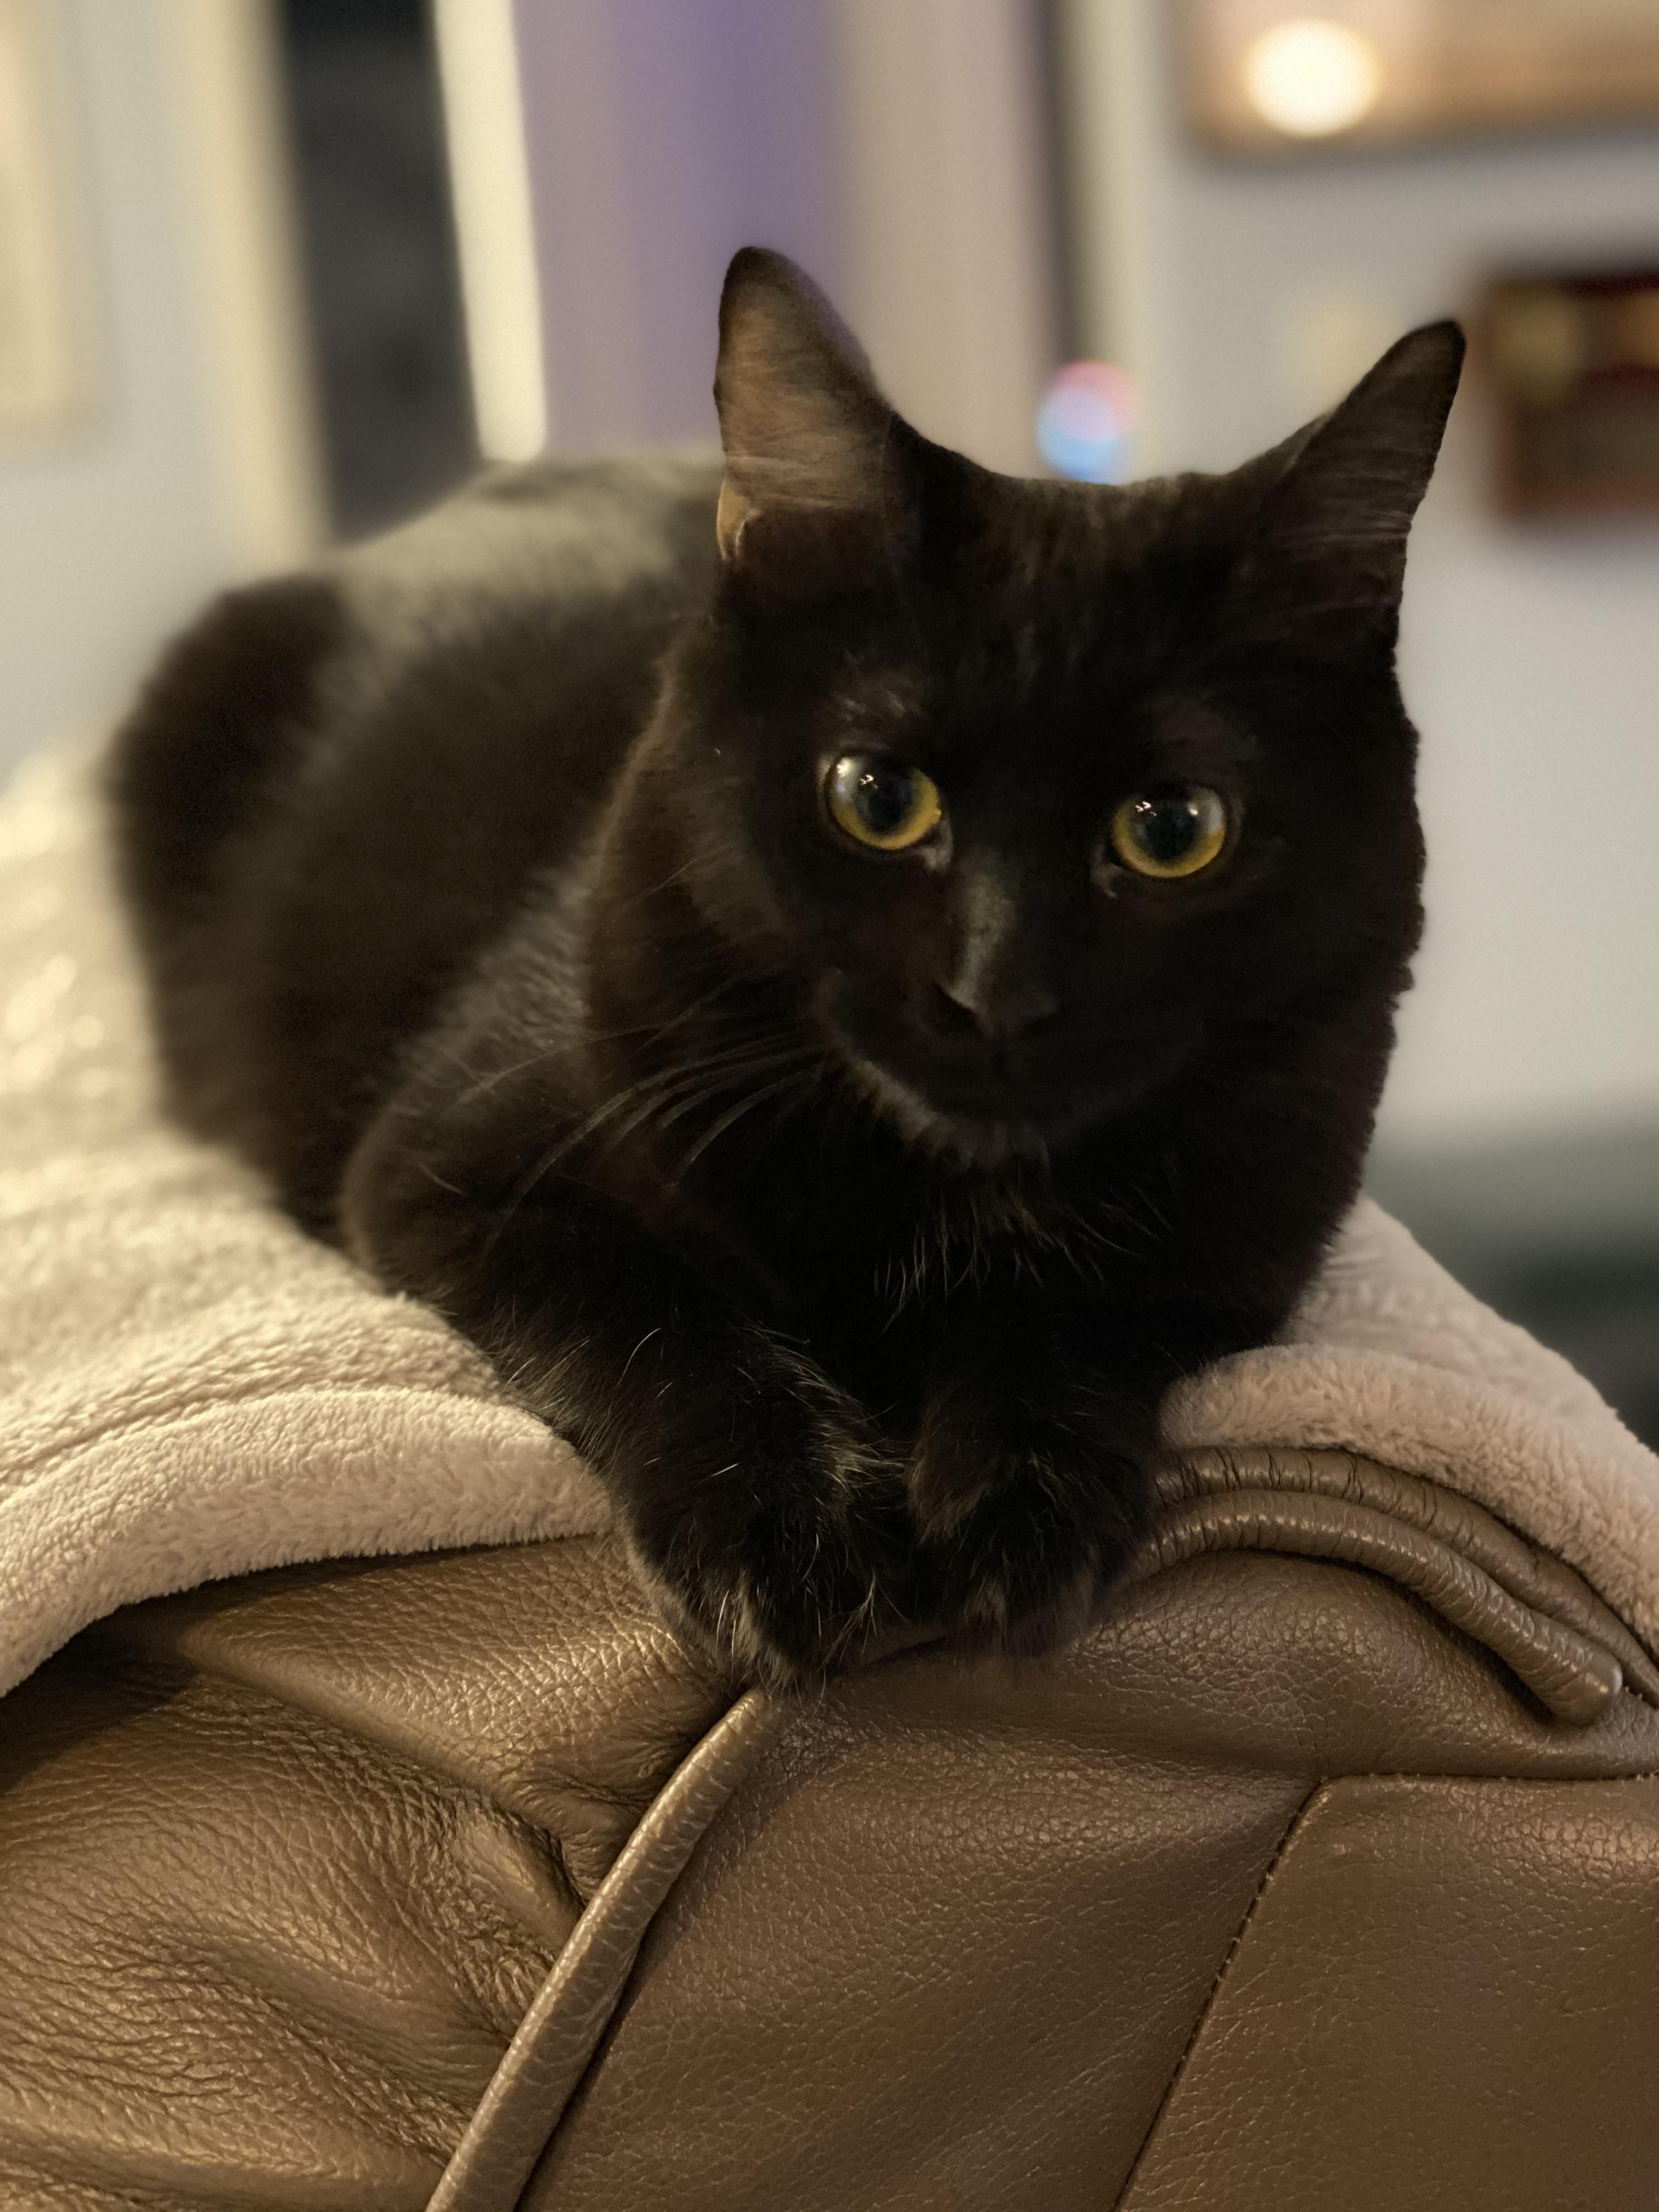 My 8 Month Old Little Void Boo Https Ift Tt 2g80qge In 2020 Kittens Cutest Cat Pictures For Kids Cat Mom